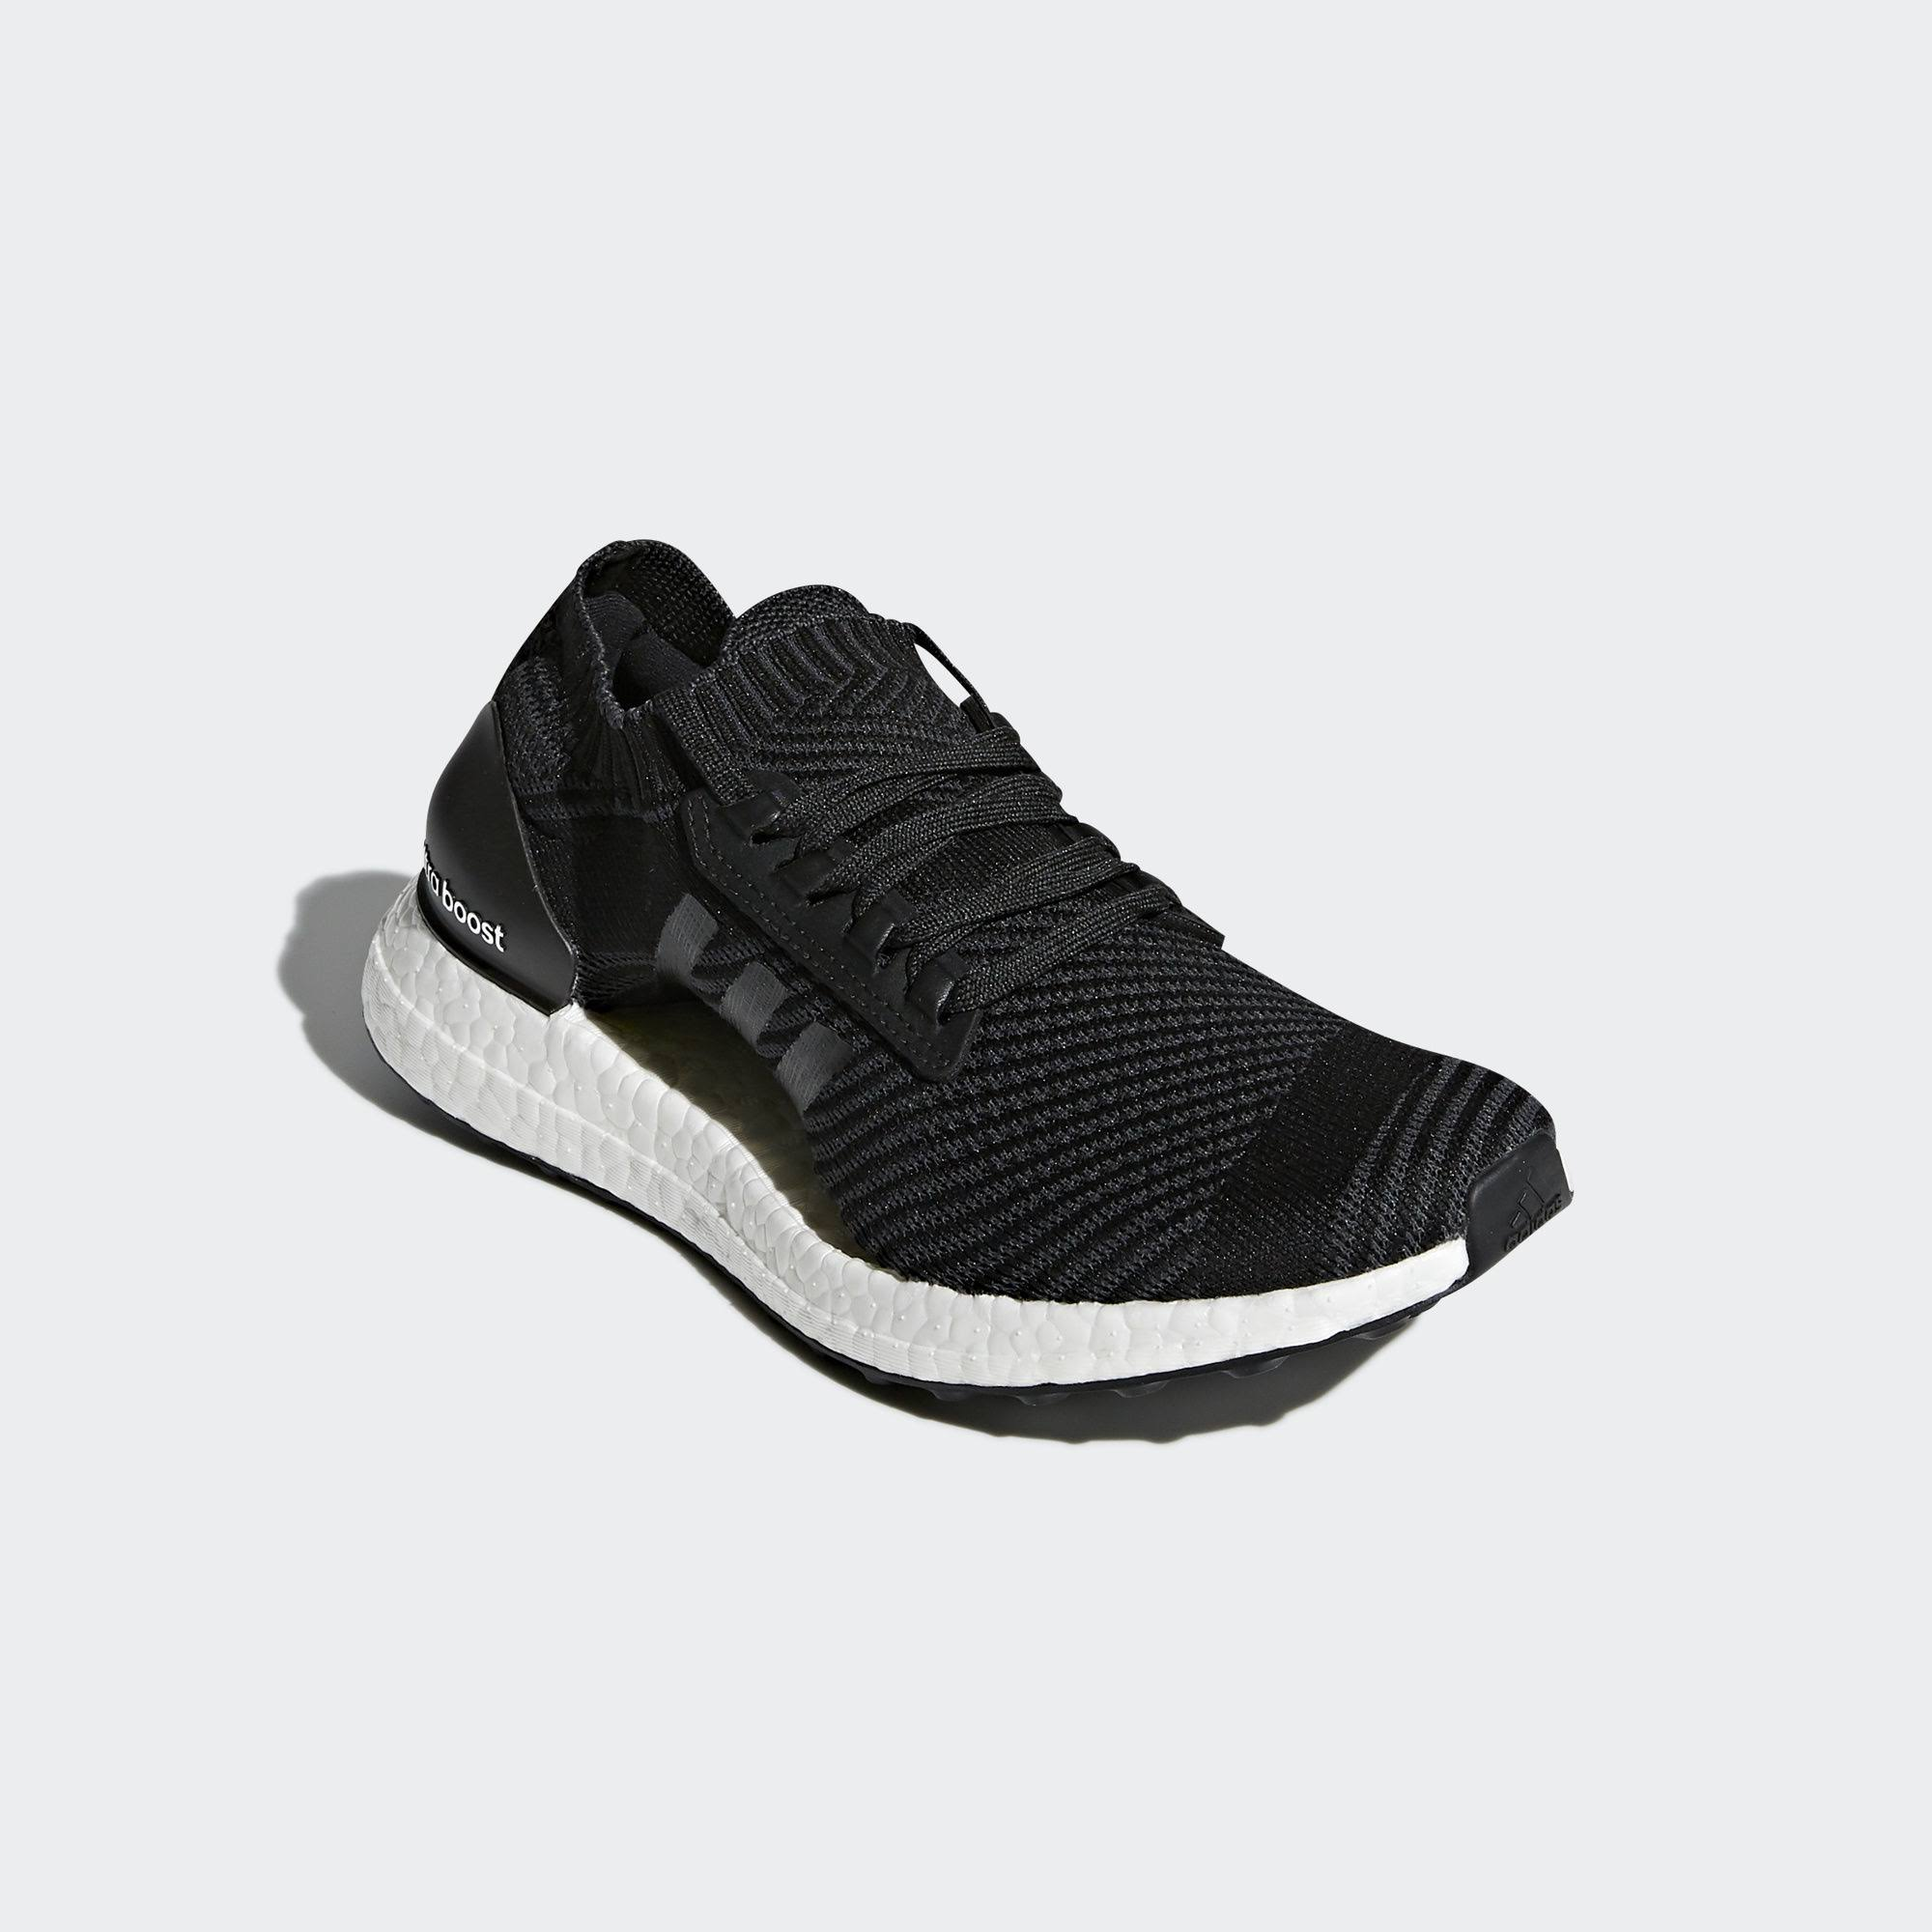 BlackCarbon schoenenDames Ultraboost X 5 Adidas 10 Core gy7IYbmf6v